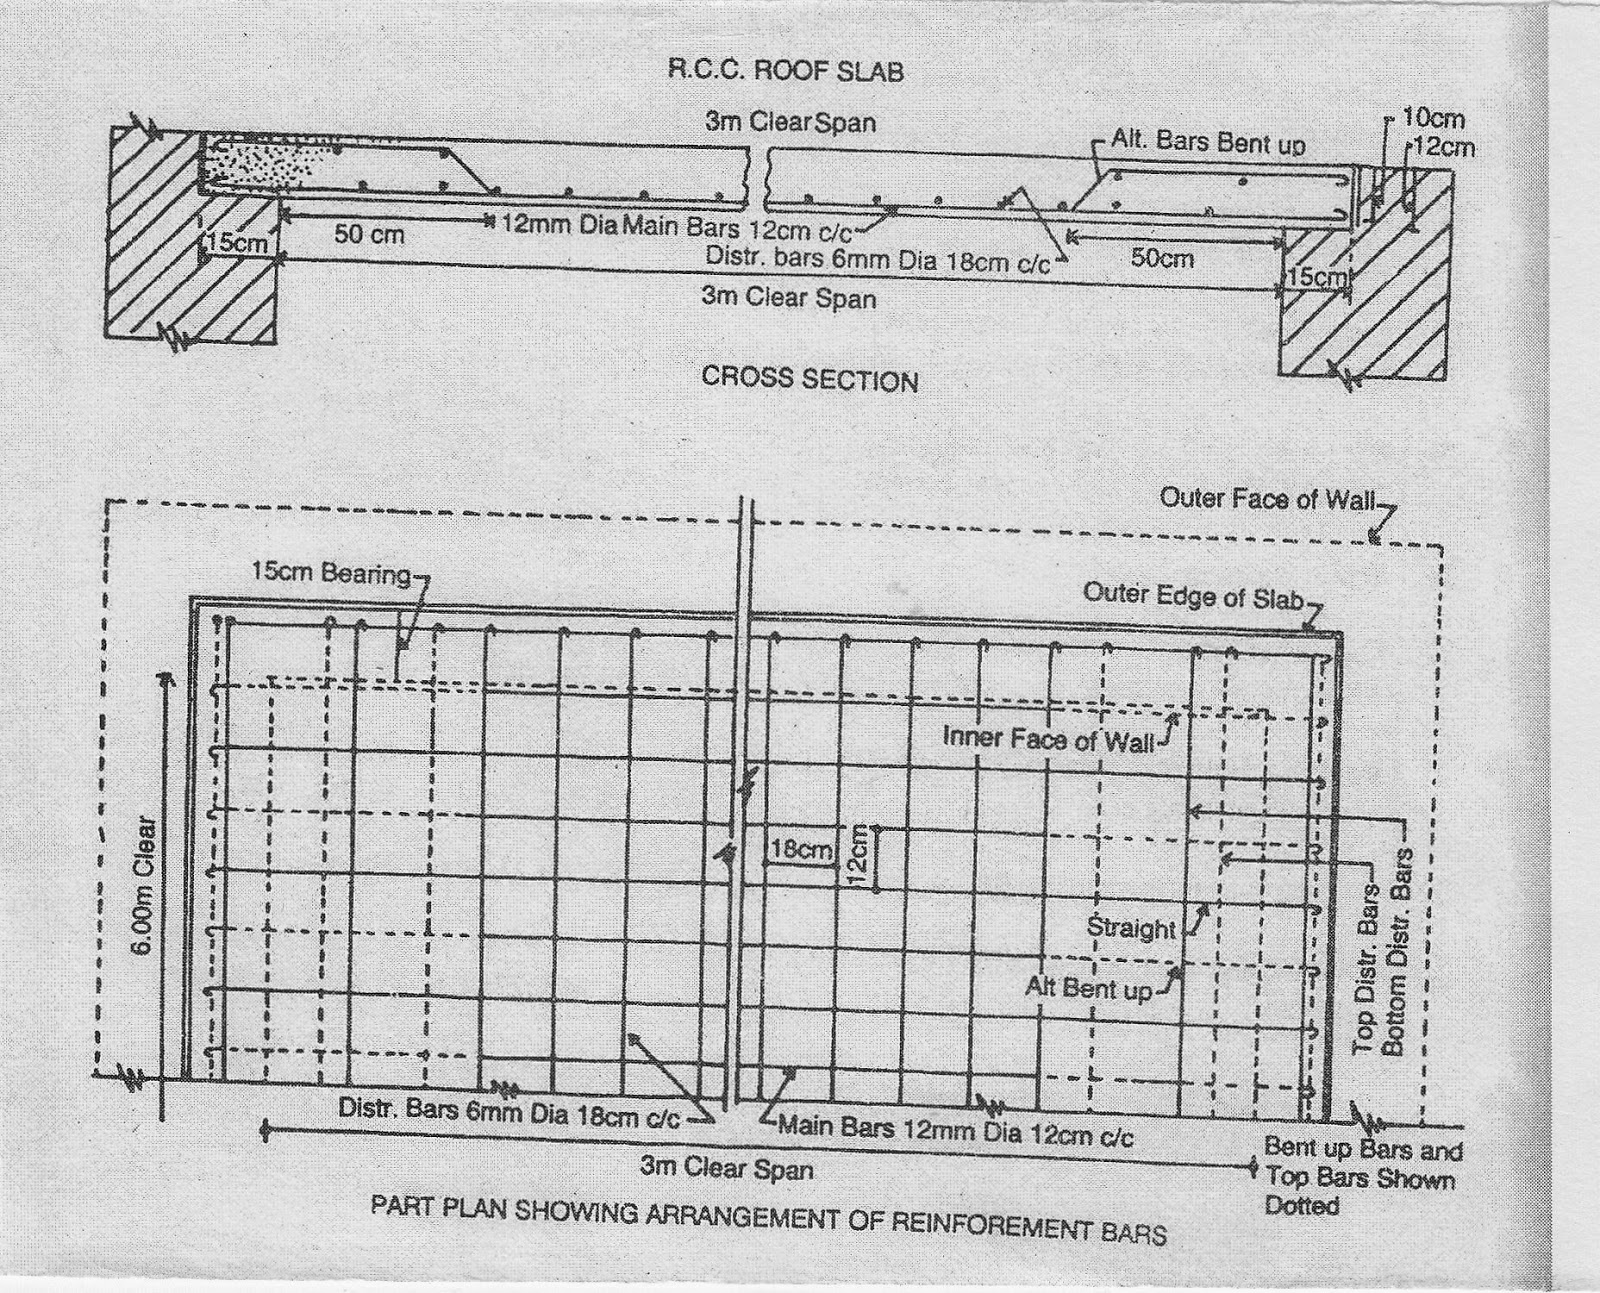 Rcc slab roof design example for Slab house plans